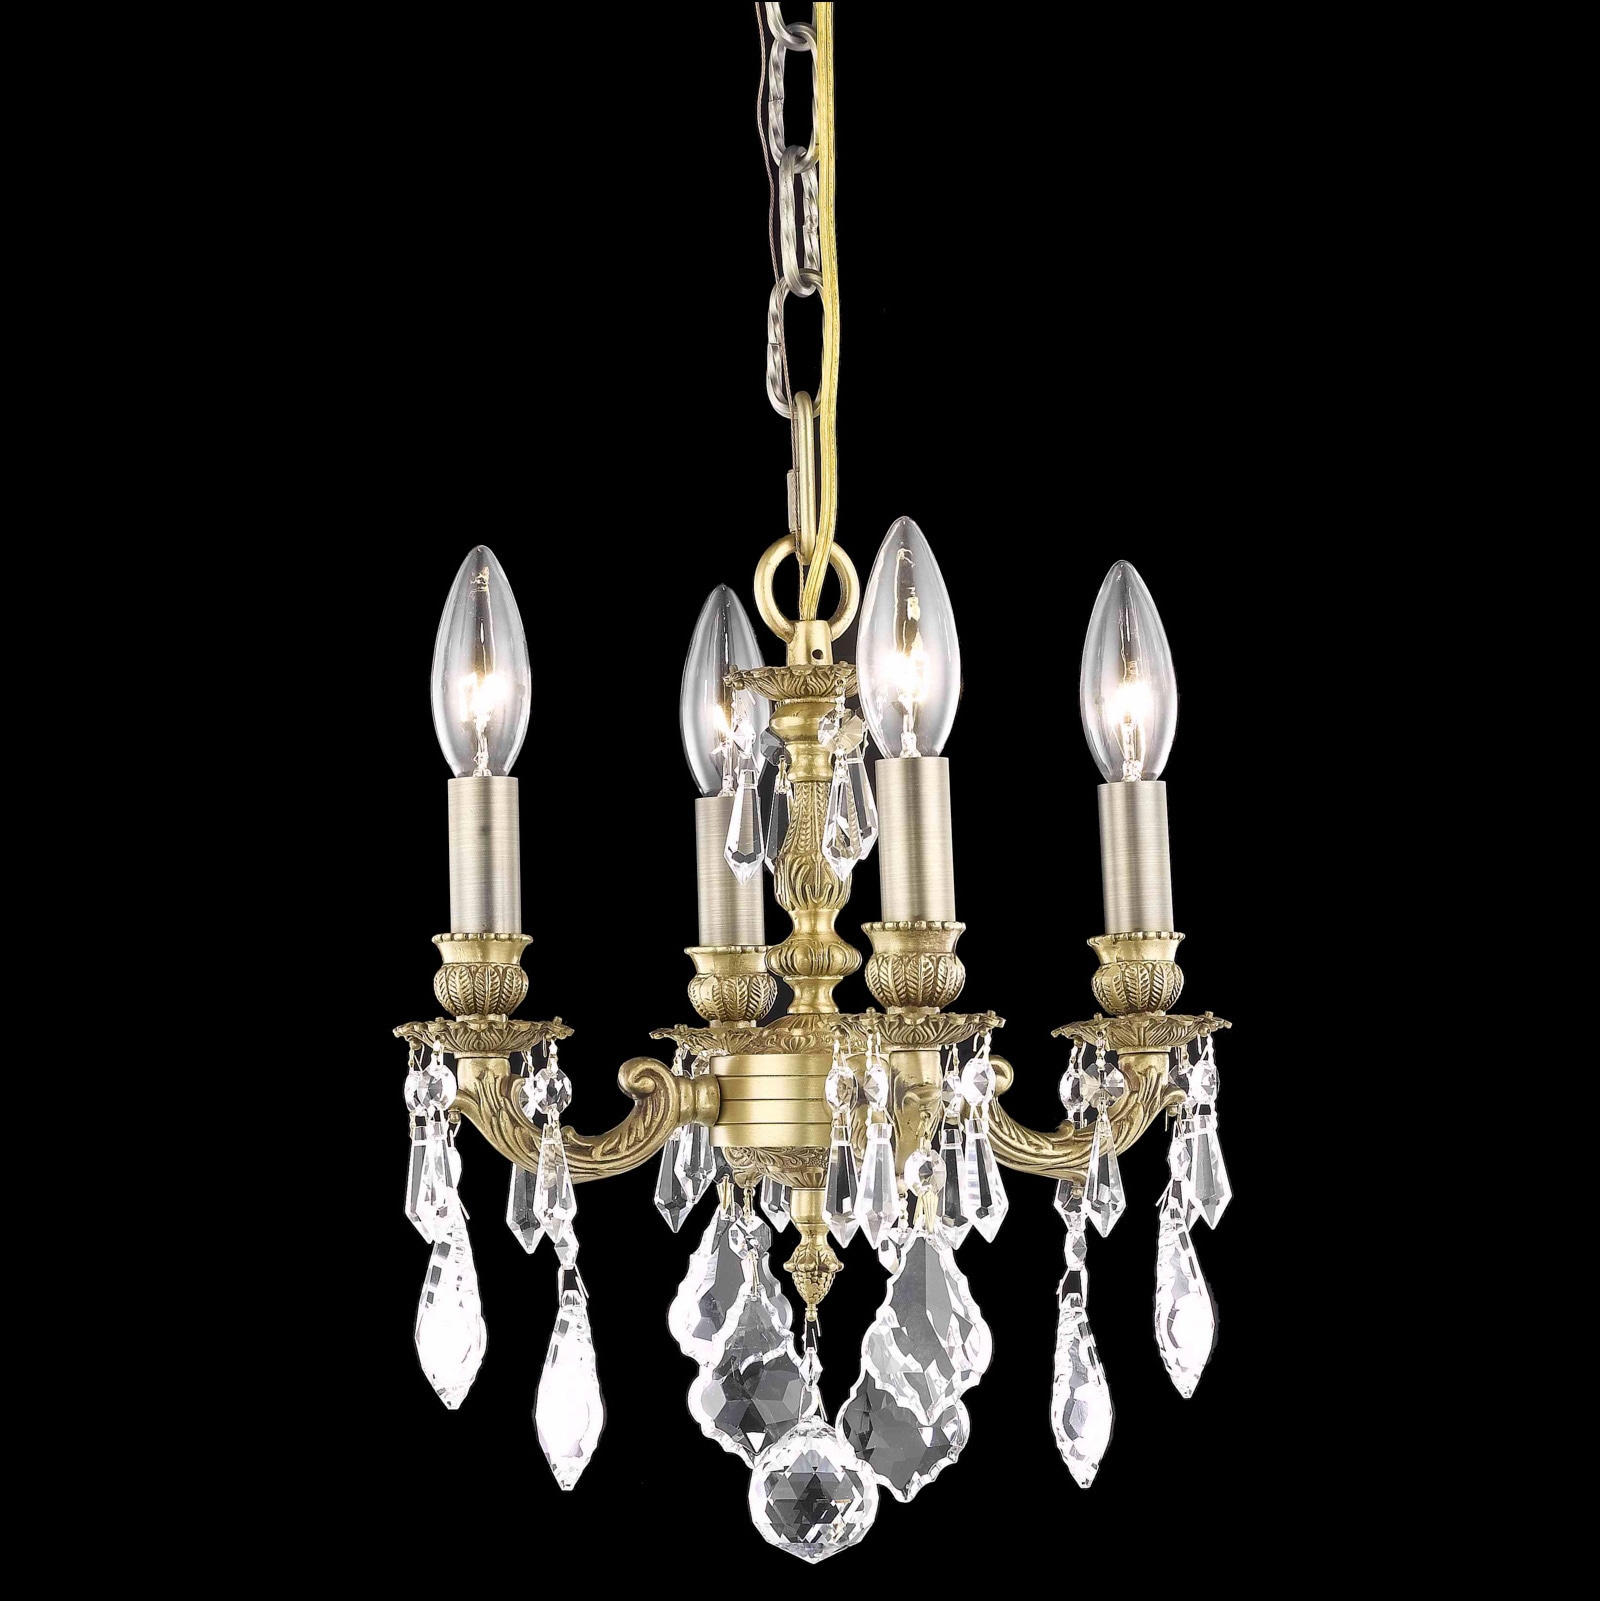 Somette crystal 4 light french gold chandelier free shipping today somette crystal 4 light french gold chandelier free shipping today overstock 13814566 arubaitofo Gallery